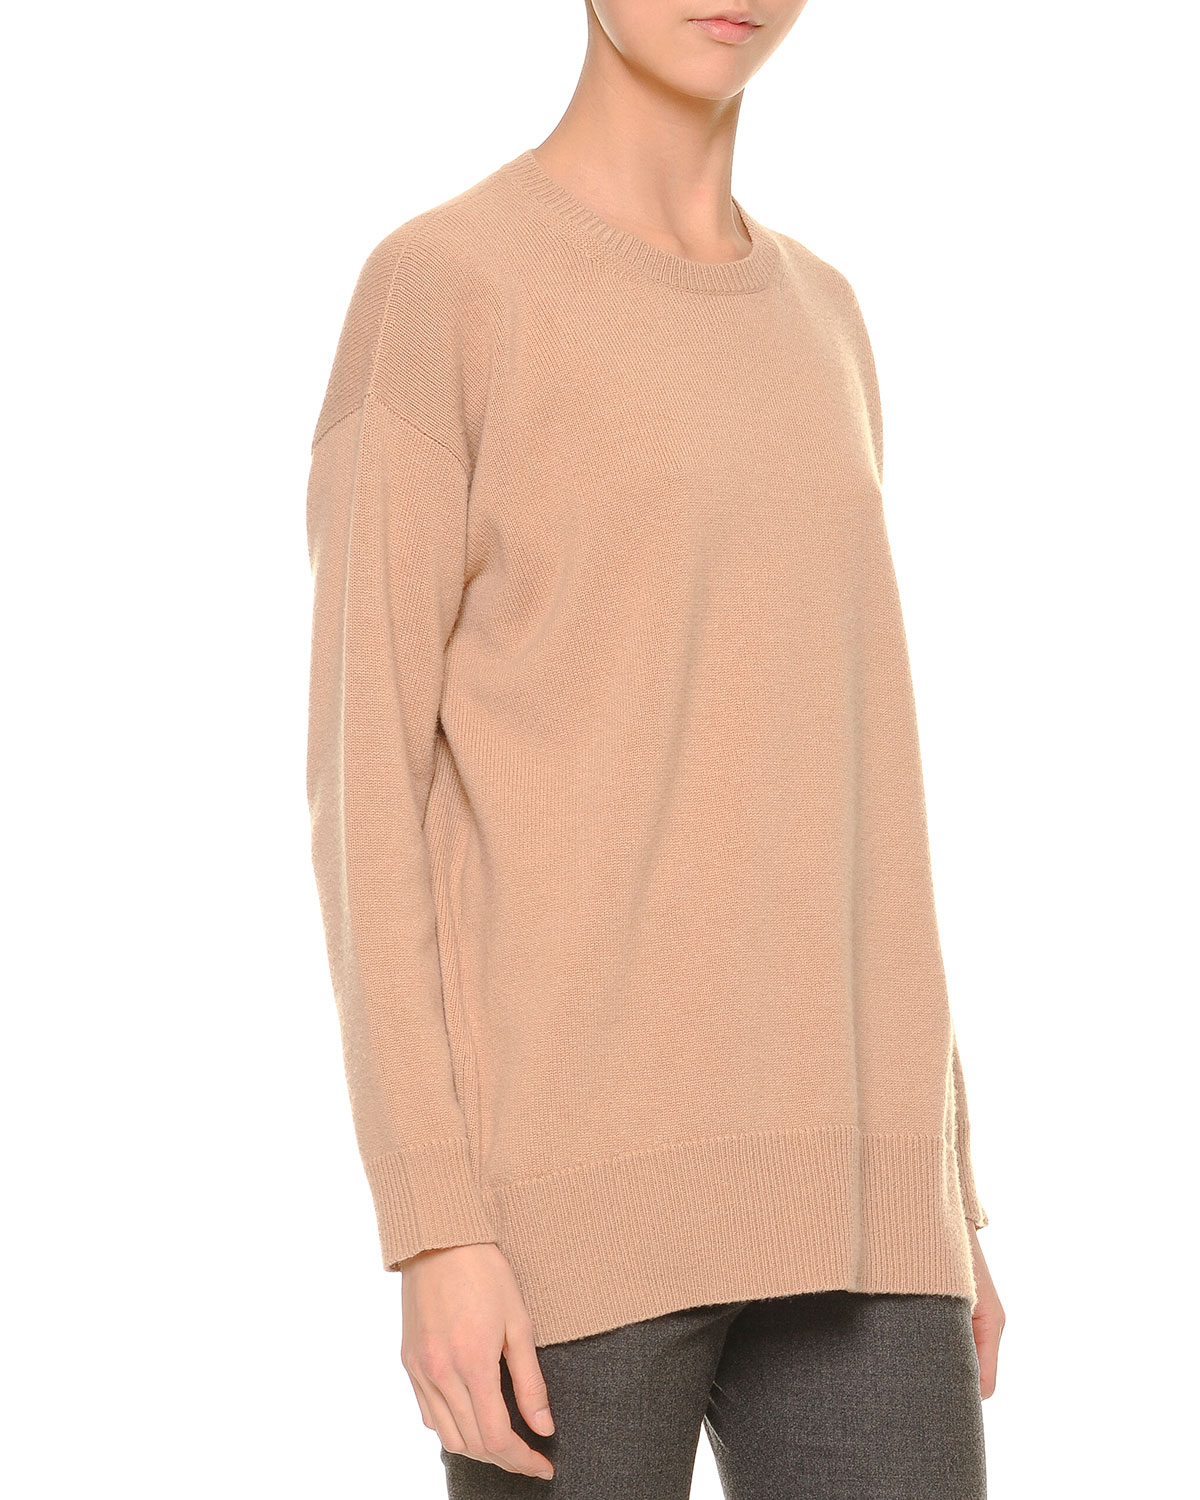 Felted Cashmere Knit Tunic Sweater, Camel